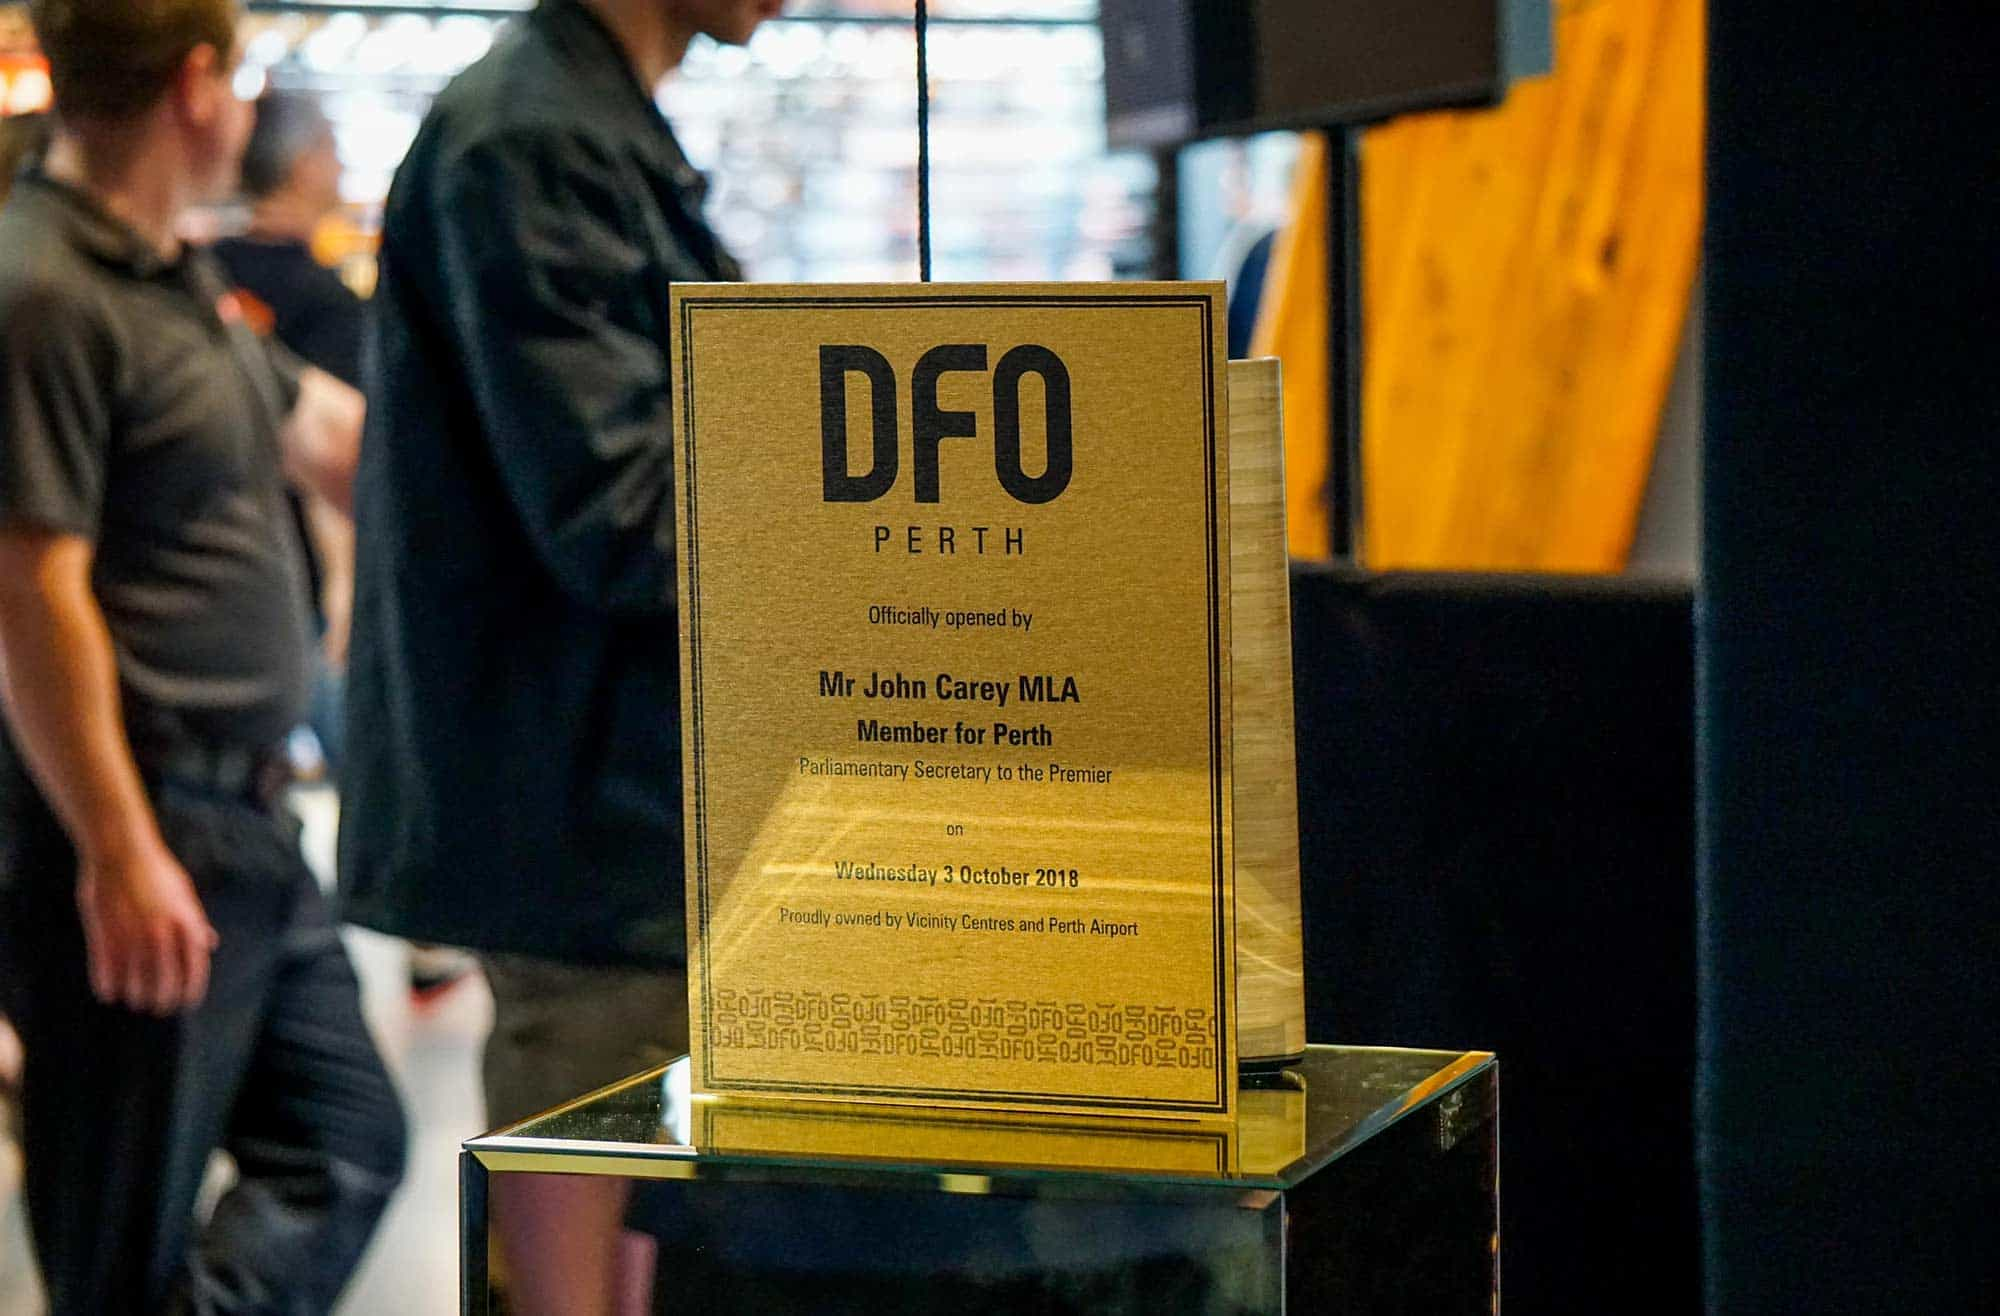 DFO Perth Airport Opening